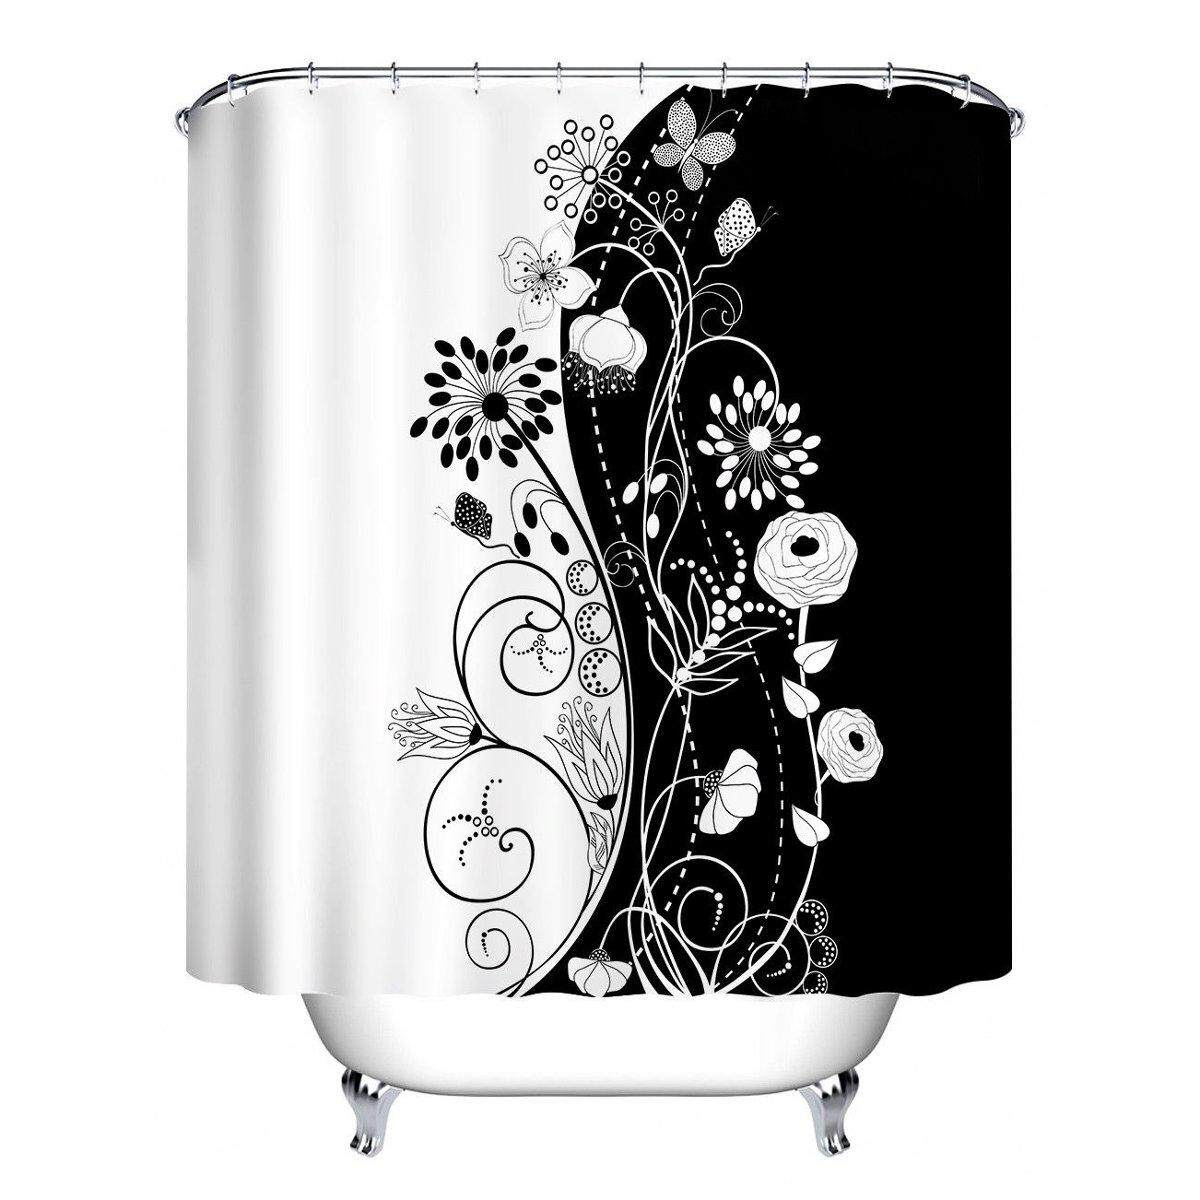 Elegant Flowers Shower Curtain Hooks Bathroom Waterproof Mat Decor Fabric Set  150*180cm By Glimmer.